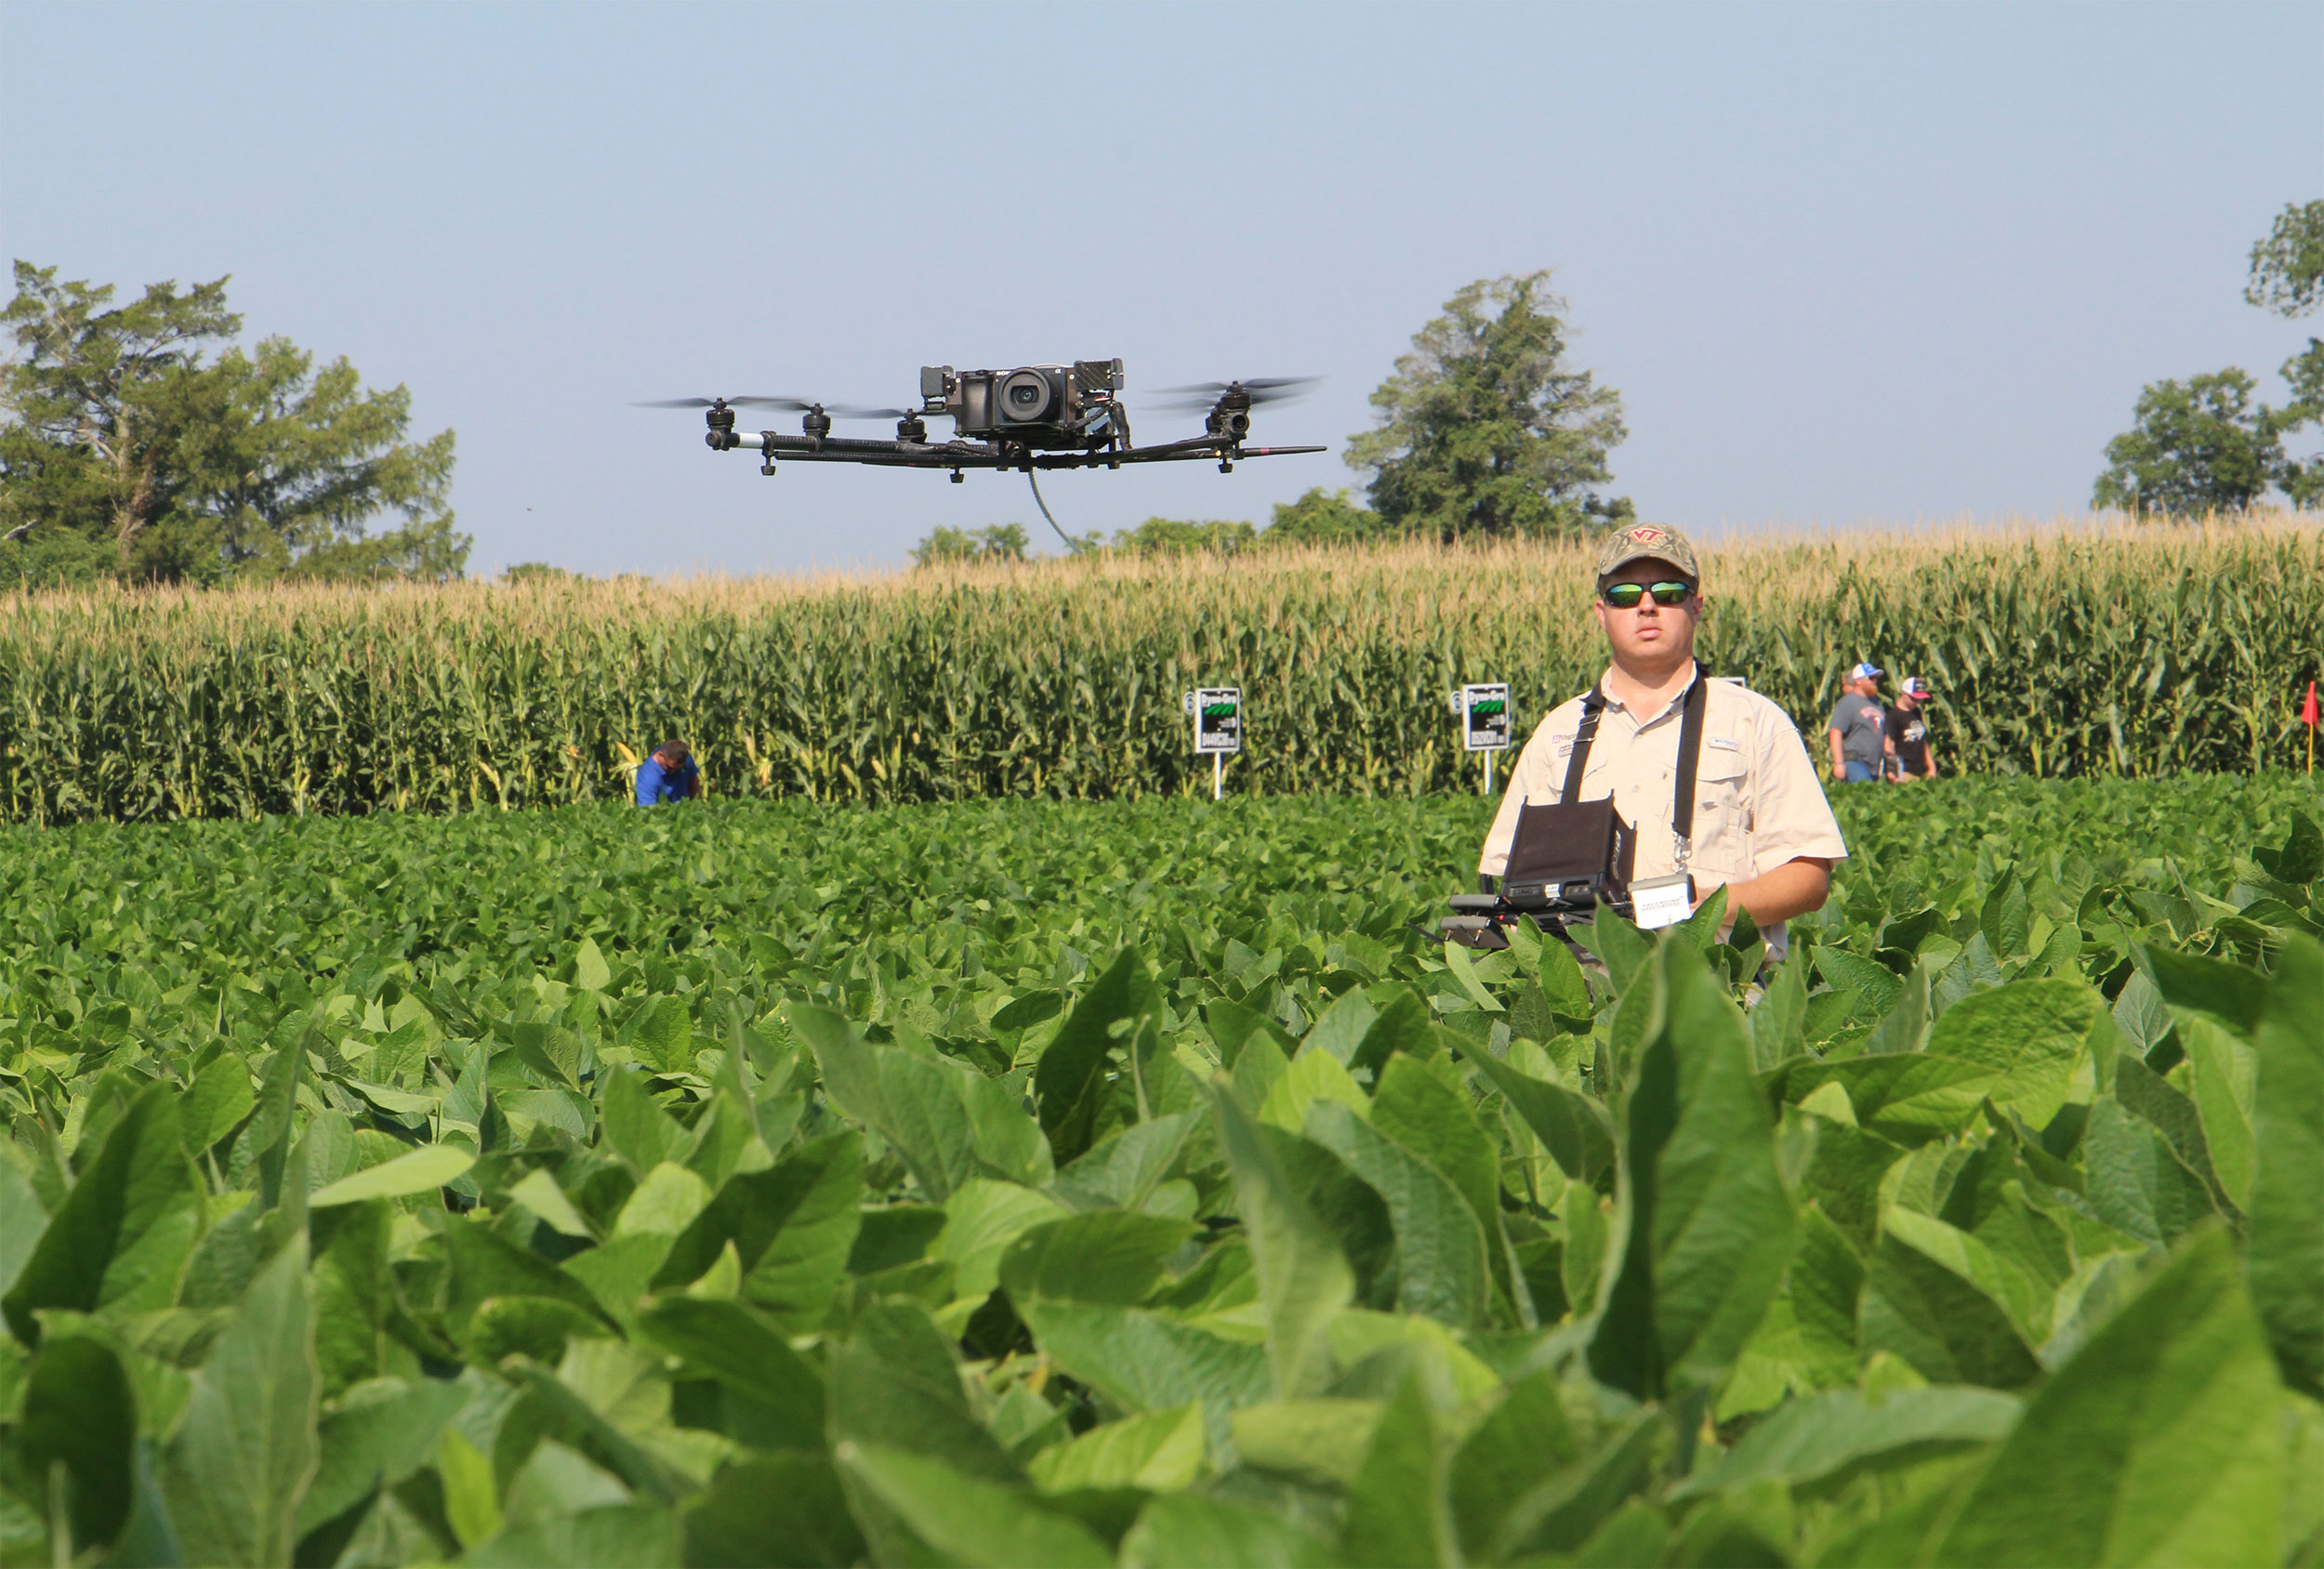 Researchers at Agricultural Research and Extension Centers around the state are investigating how cutting-edge technology tools such as drones can be used by producers to streamline their operations.